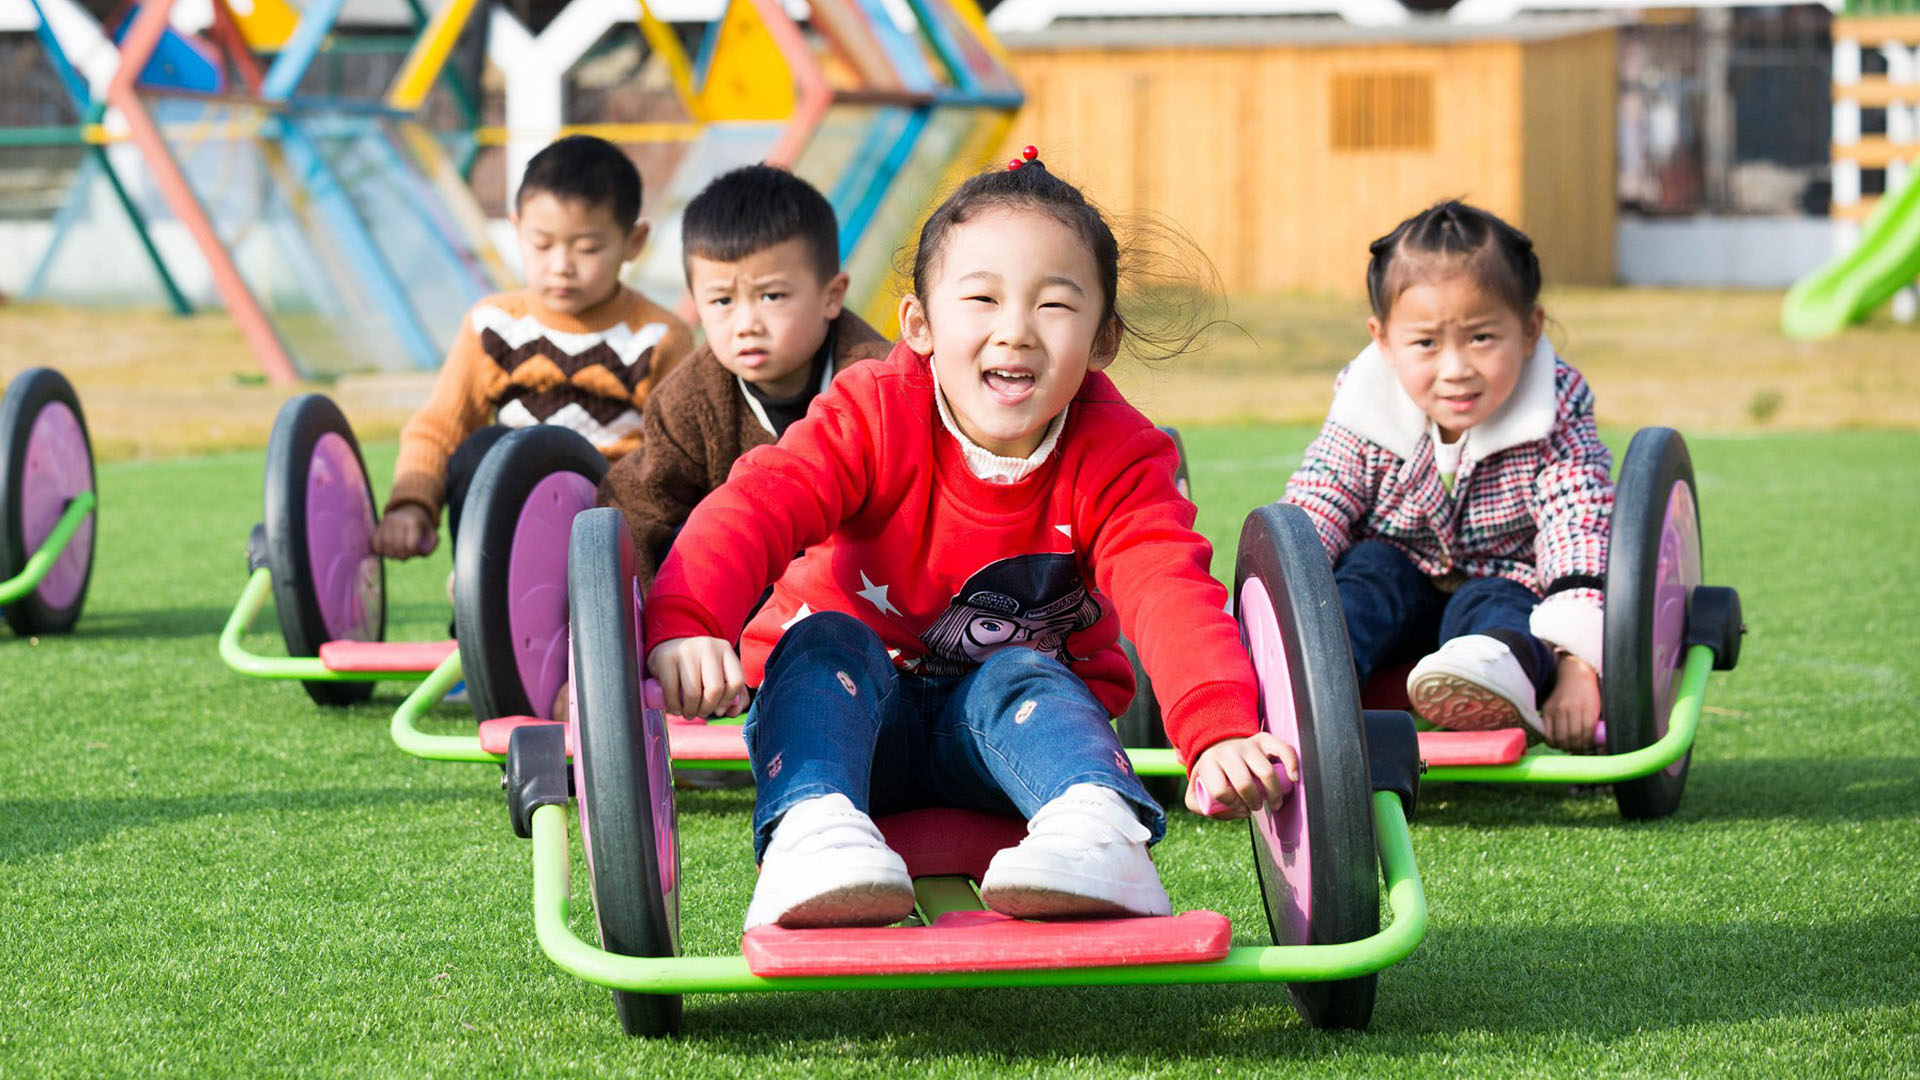 What will be the impact of China's preschool education reforms?